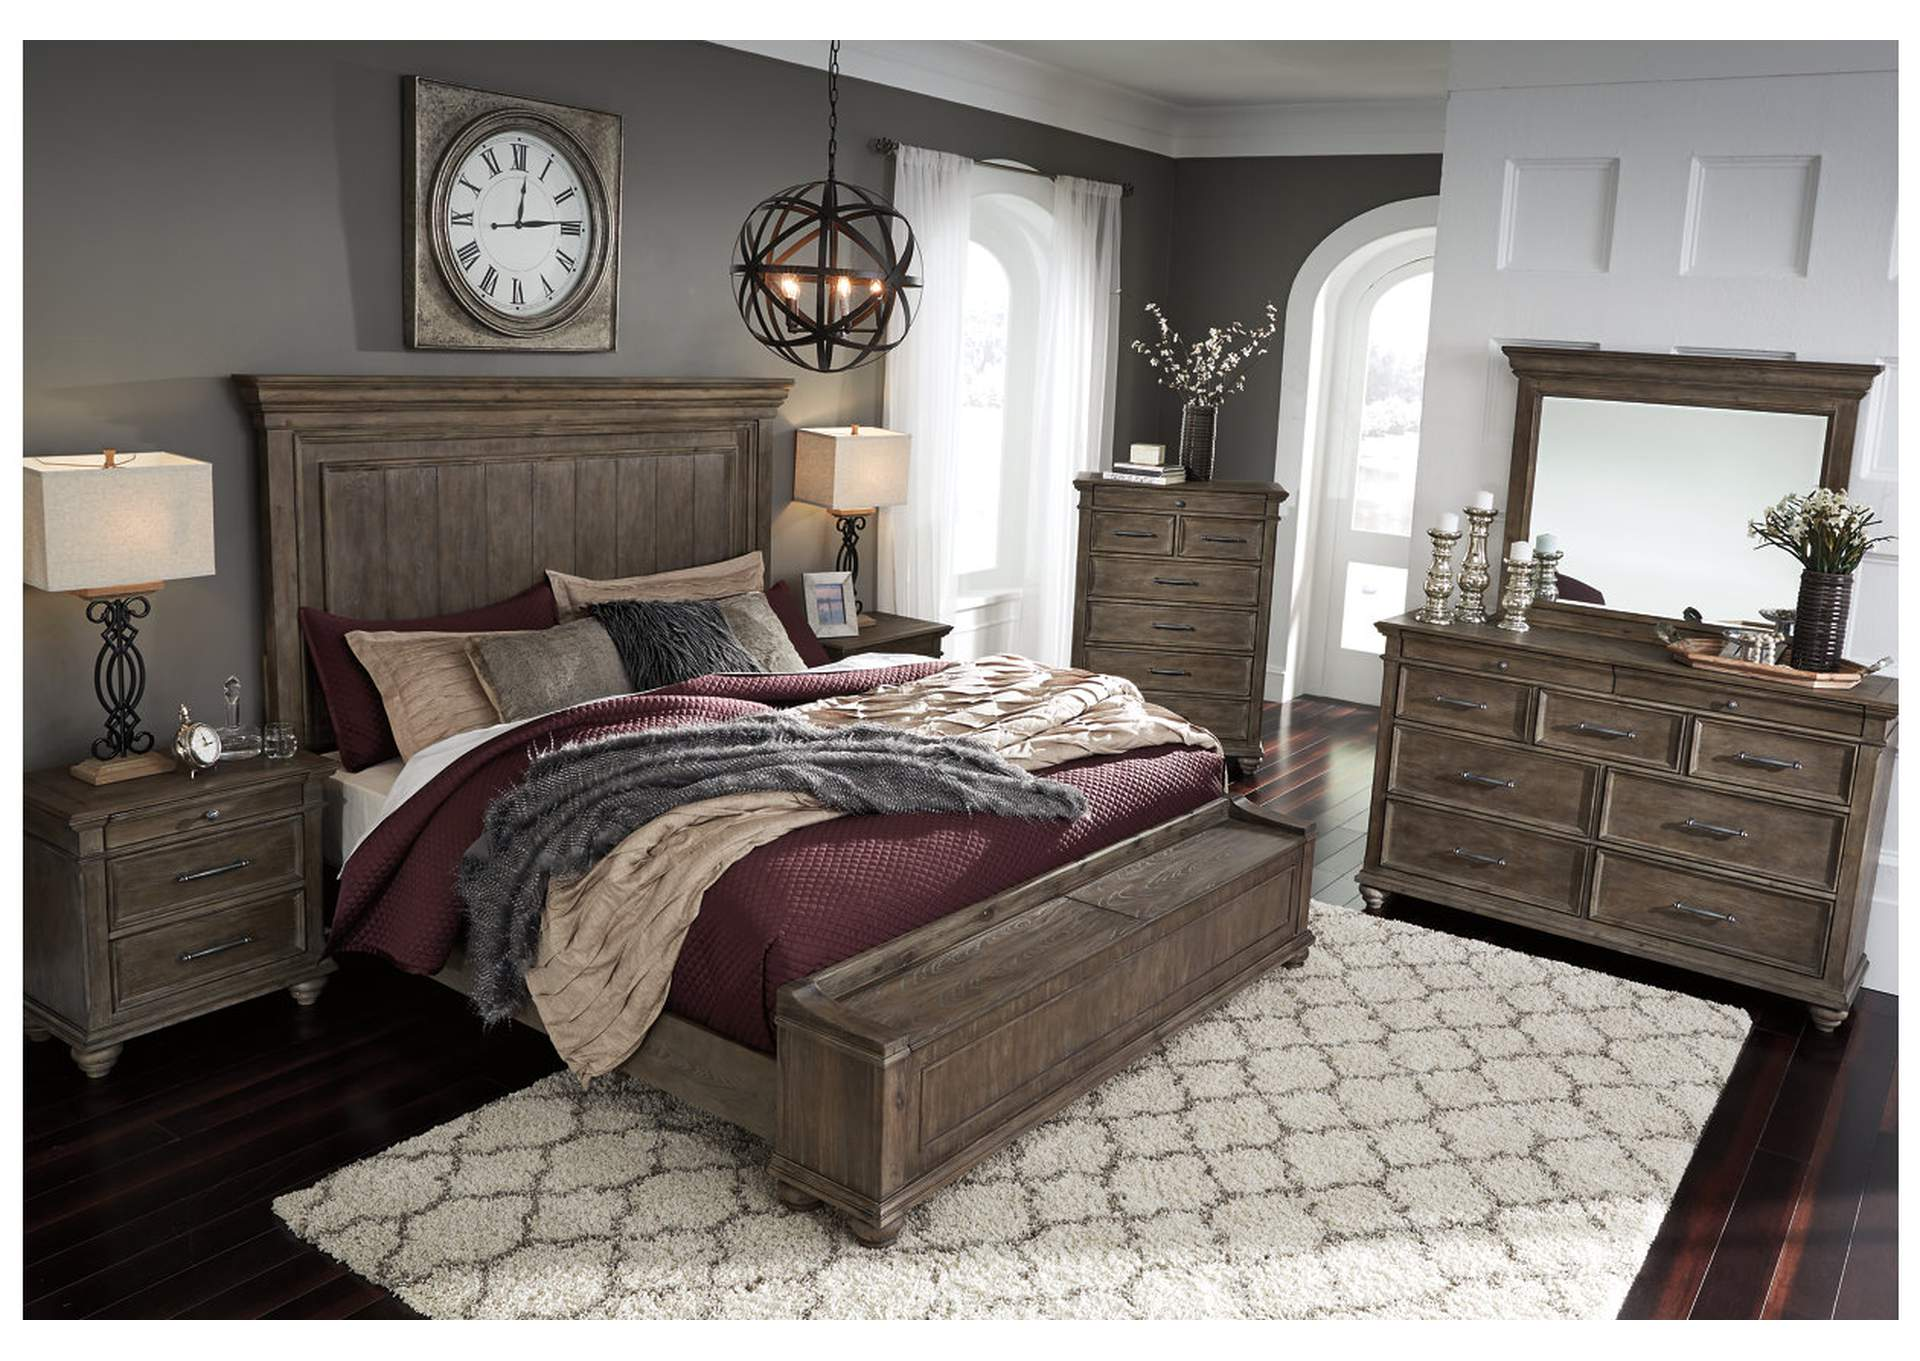 Johnelle Queen Storage Bed W Dresser And Mirror Ashley Furniture Homestore Independently Owned And Operated By Mcphails Furniture